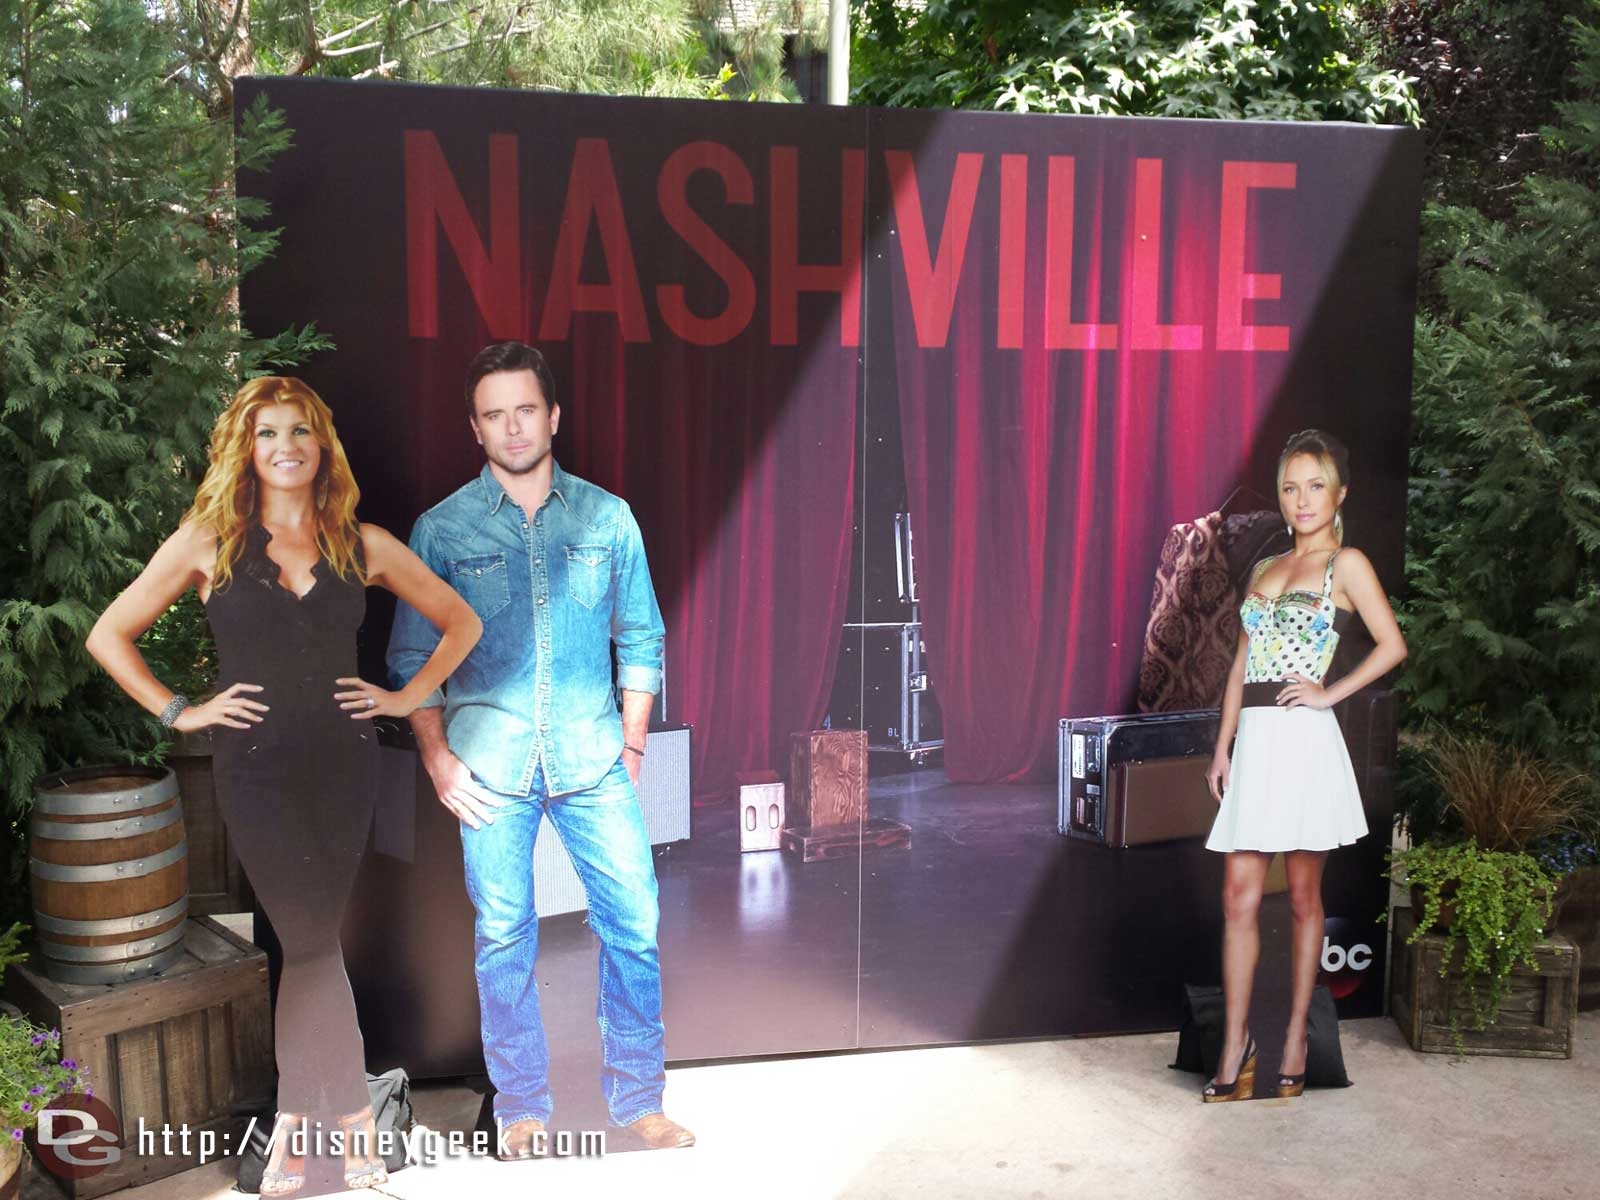 A photo op with cut outs of the Nashville cast